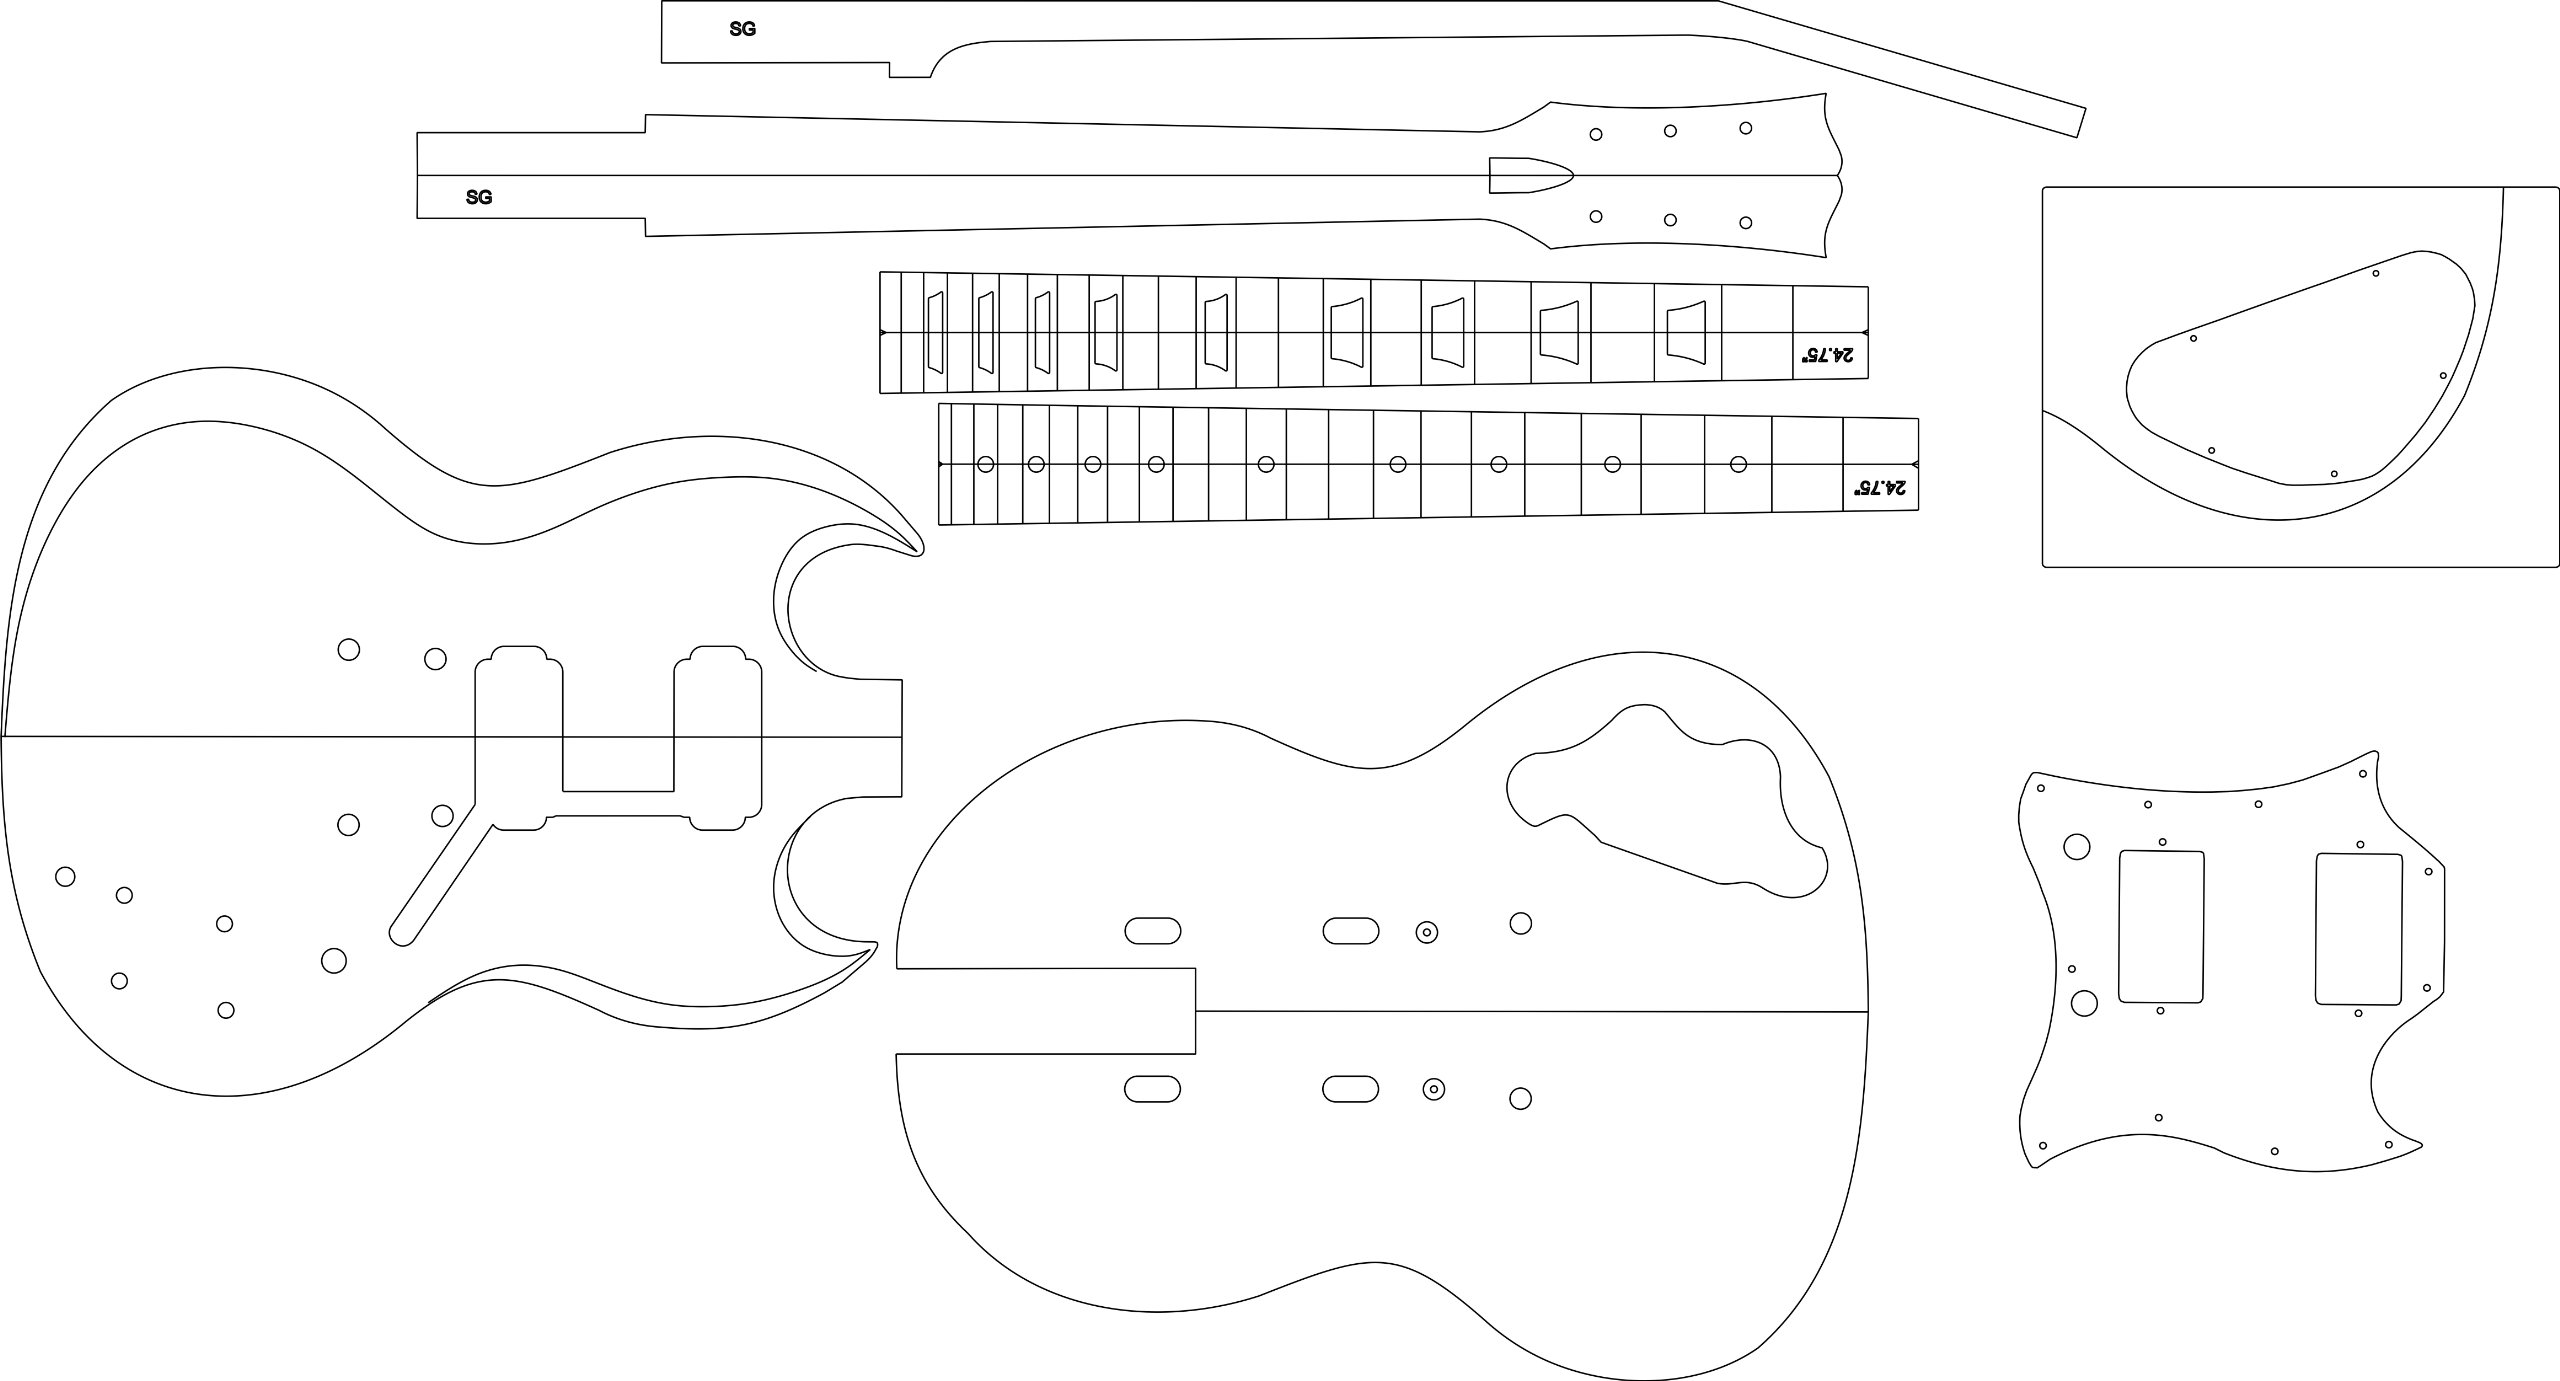 Electric Guitar Layout Template - SG by GPC (Image #1)